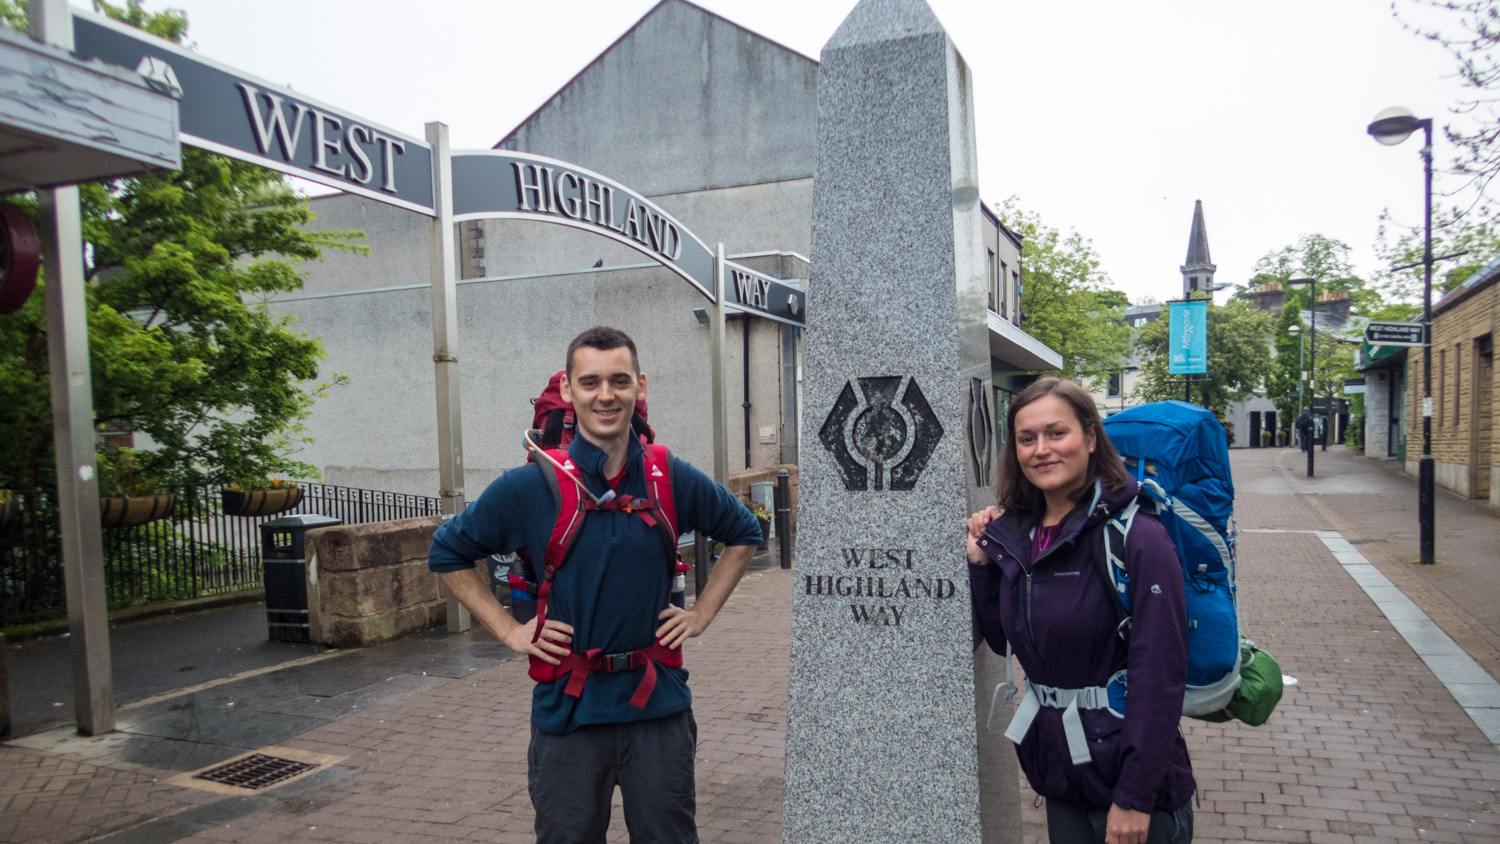 Smiles all around as we're ready to start the West Highland Way.